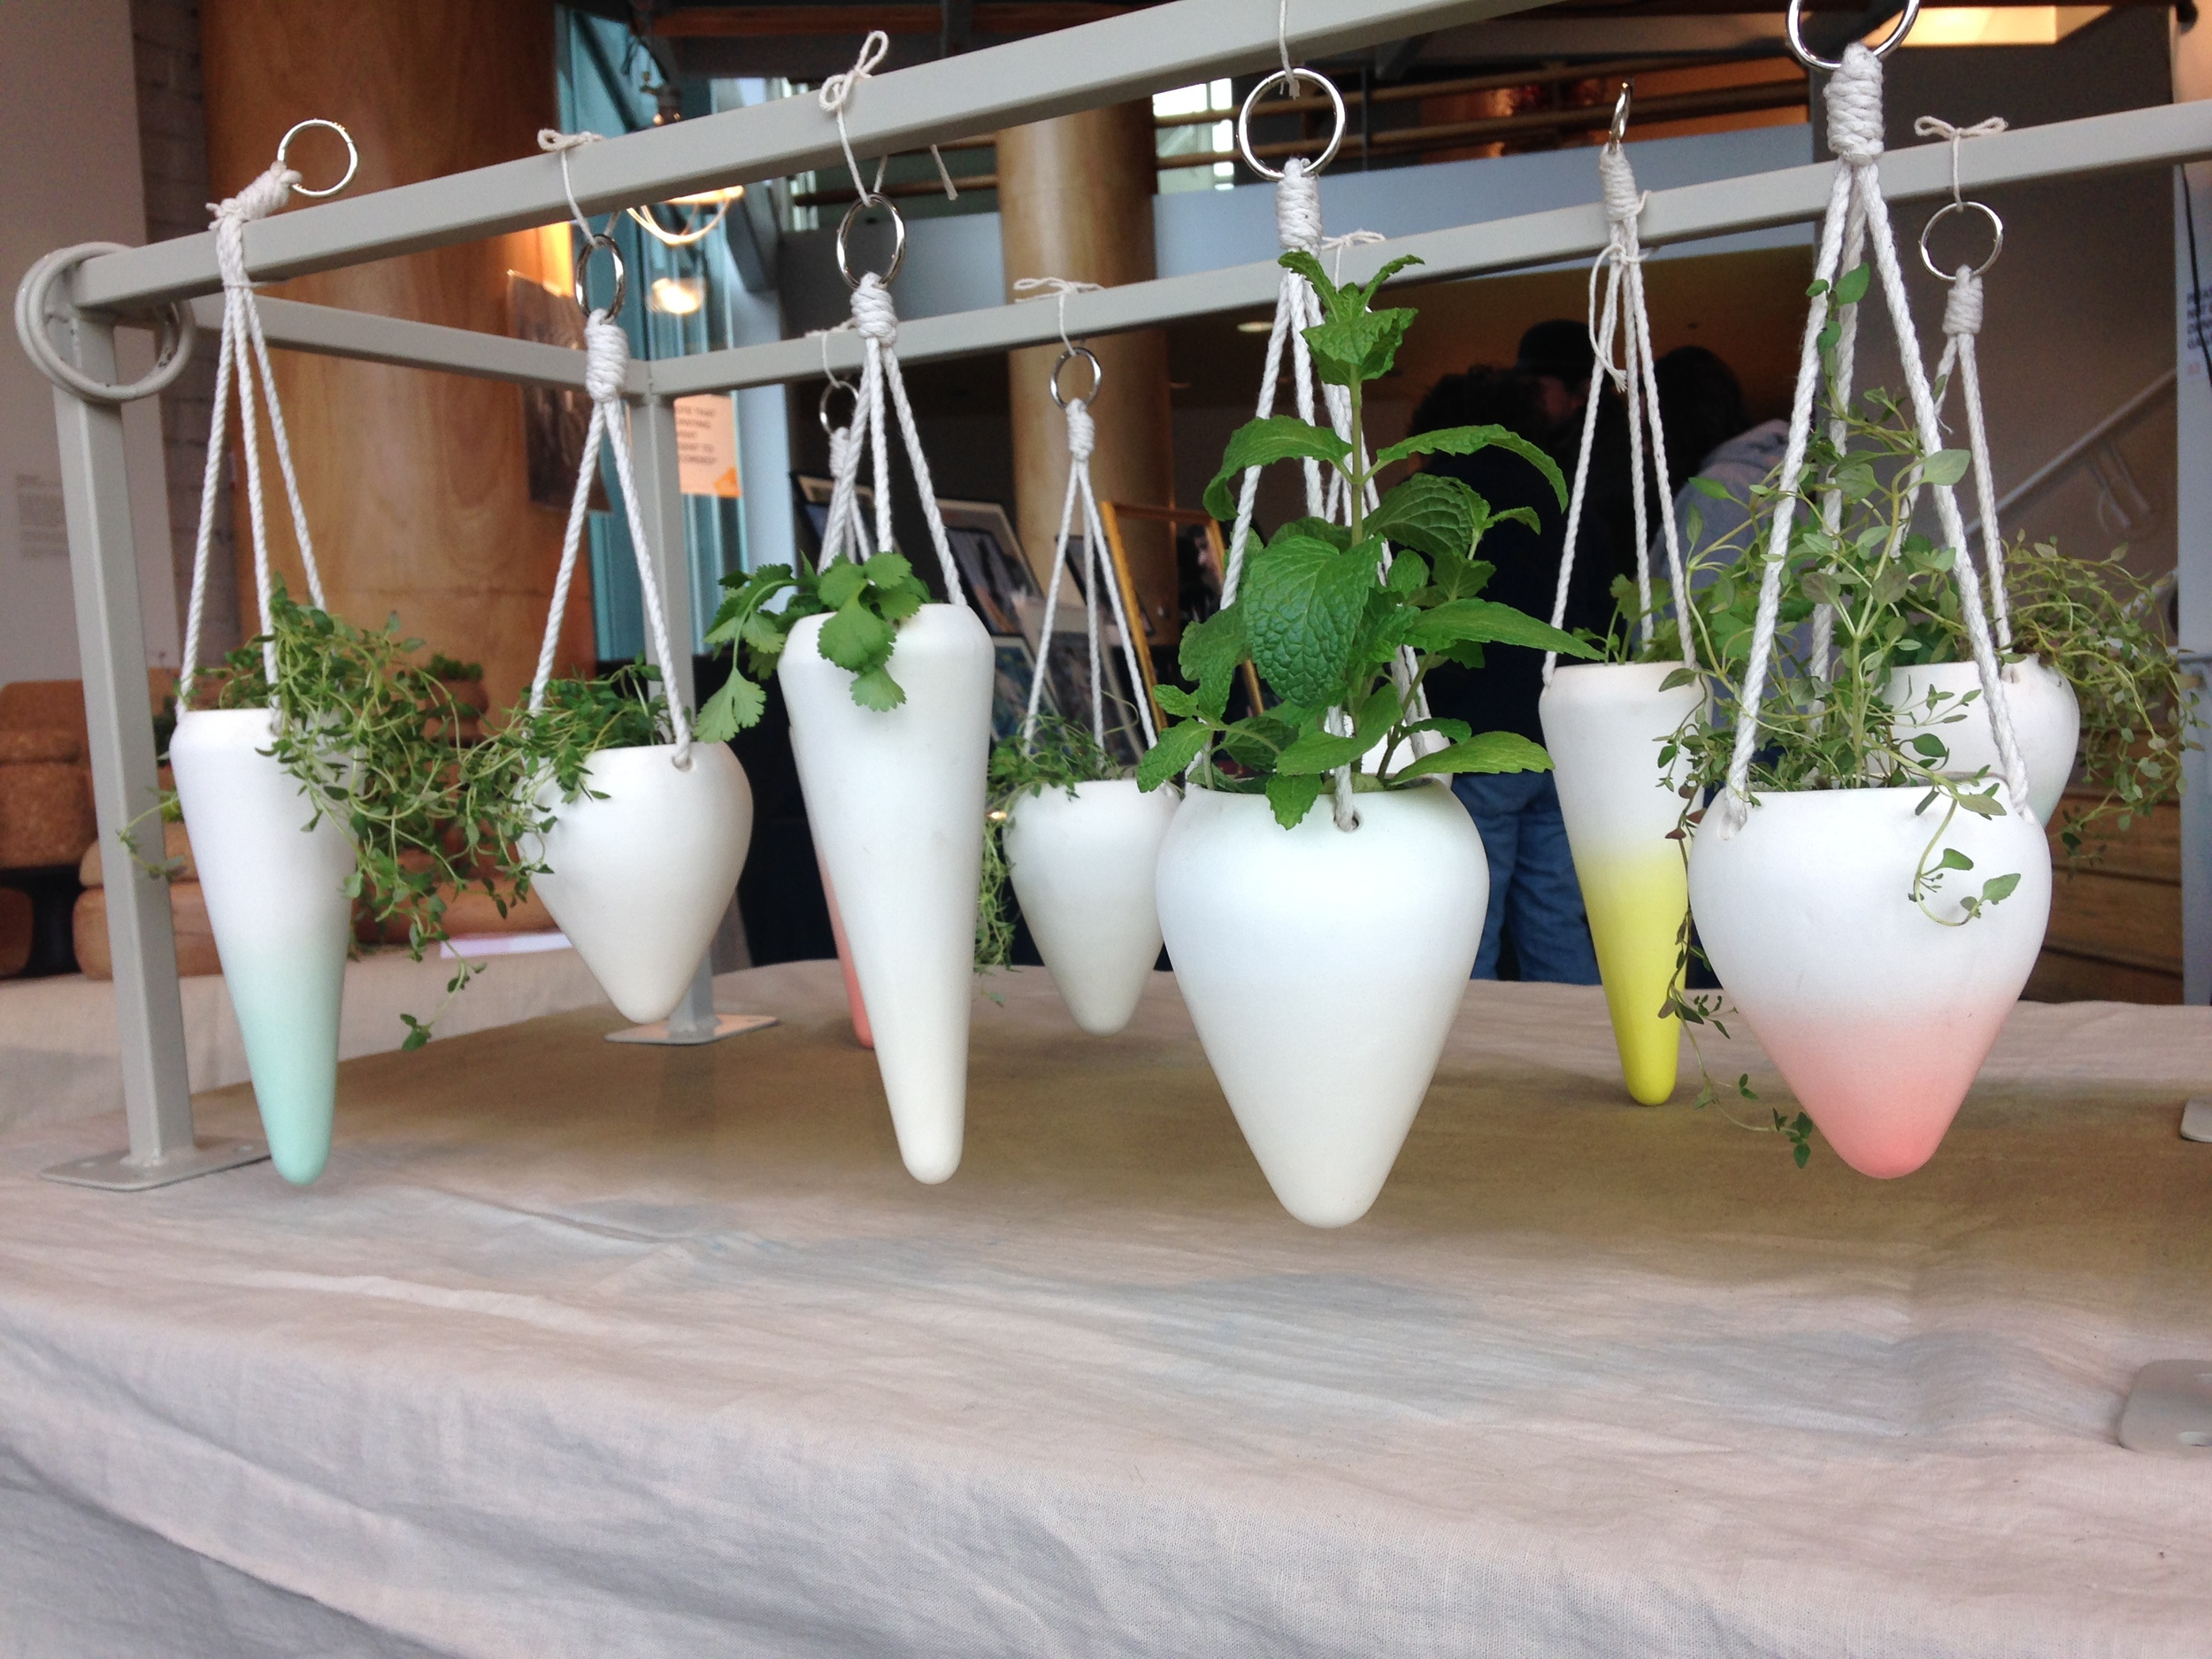 Tiffany and Joanne's beautiful hanging planters! I love the gradients!